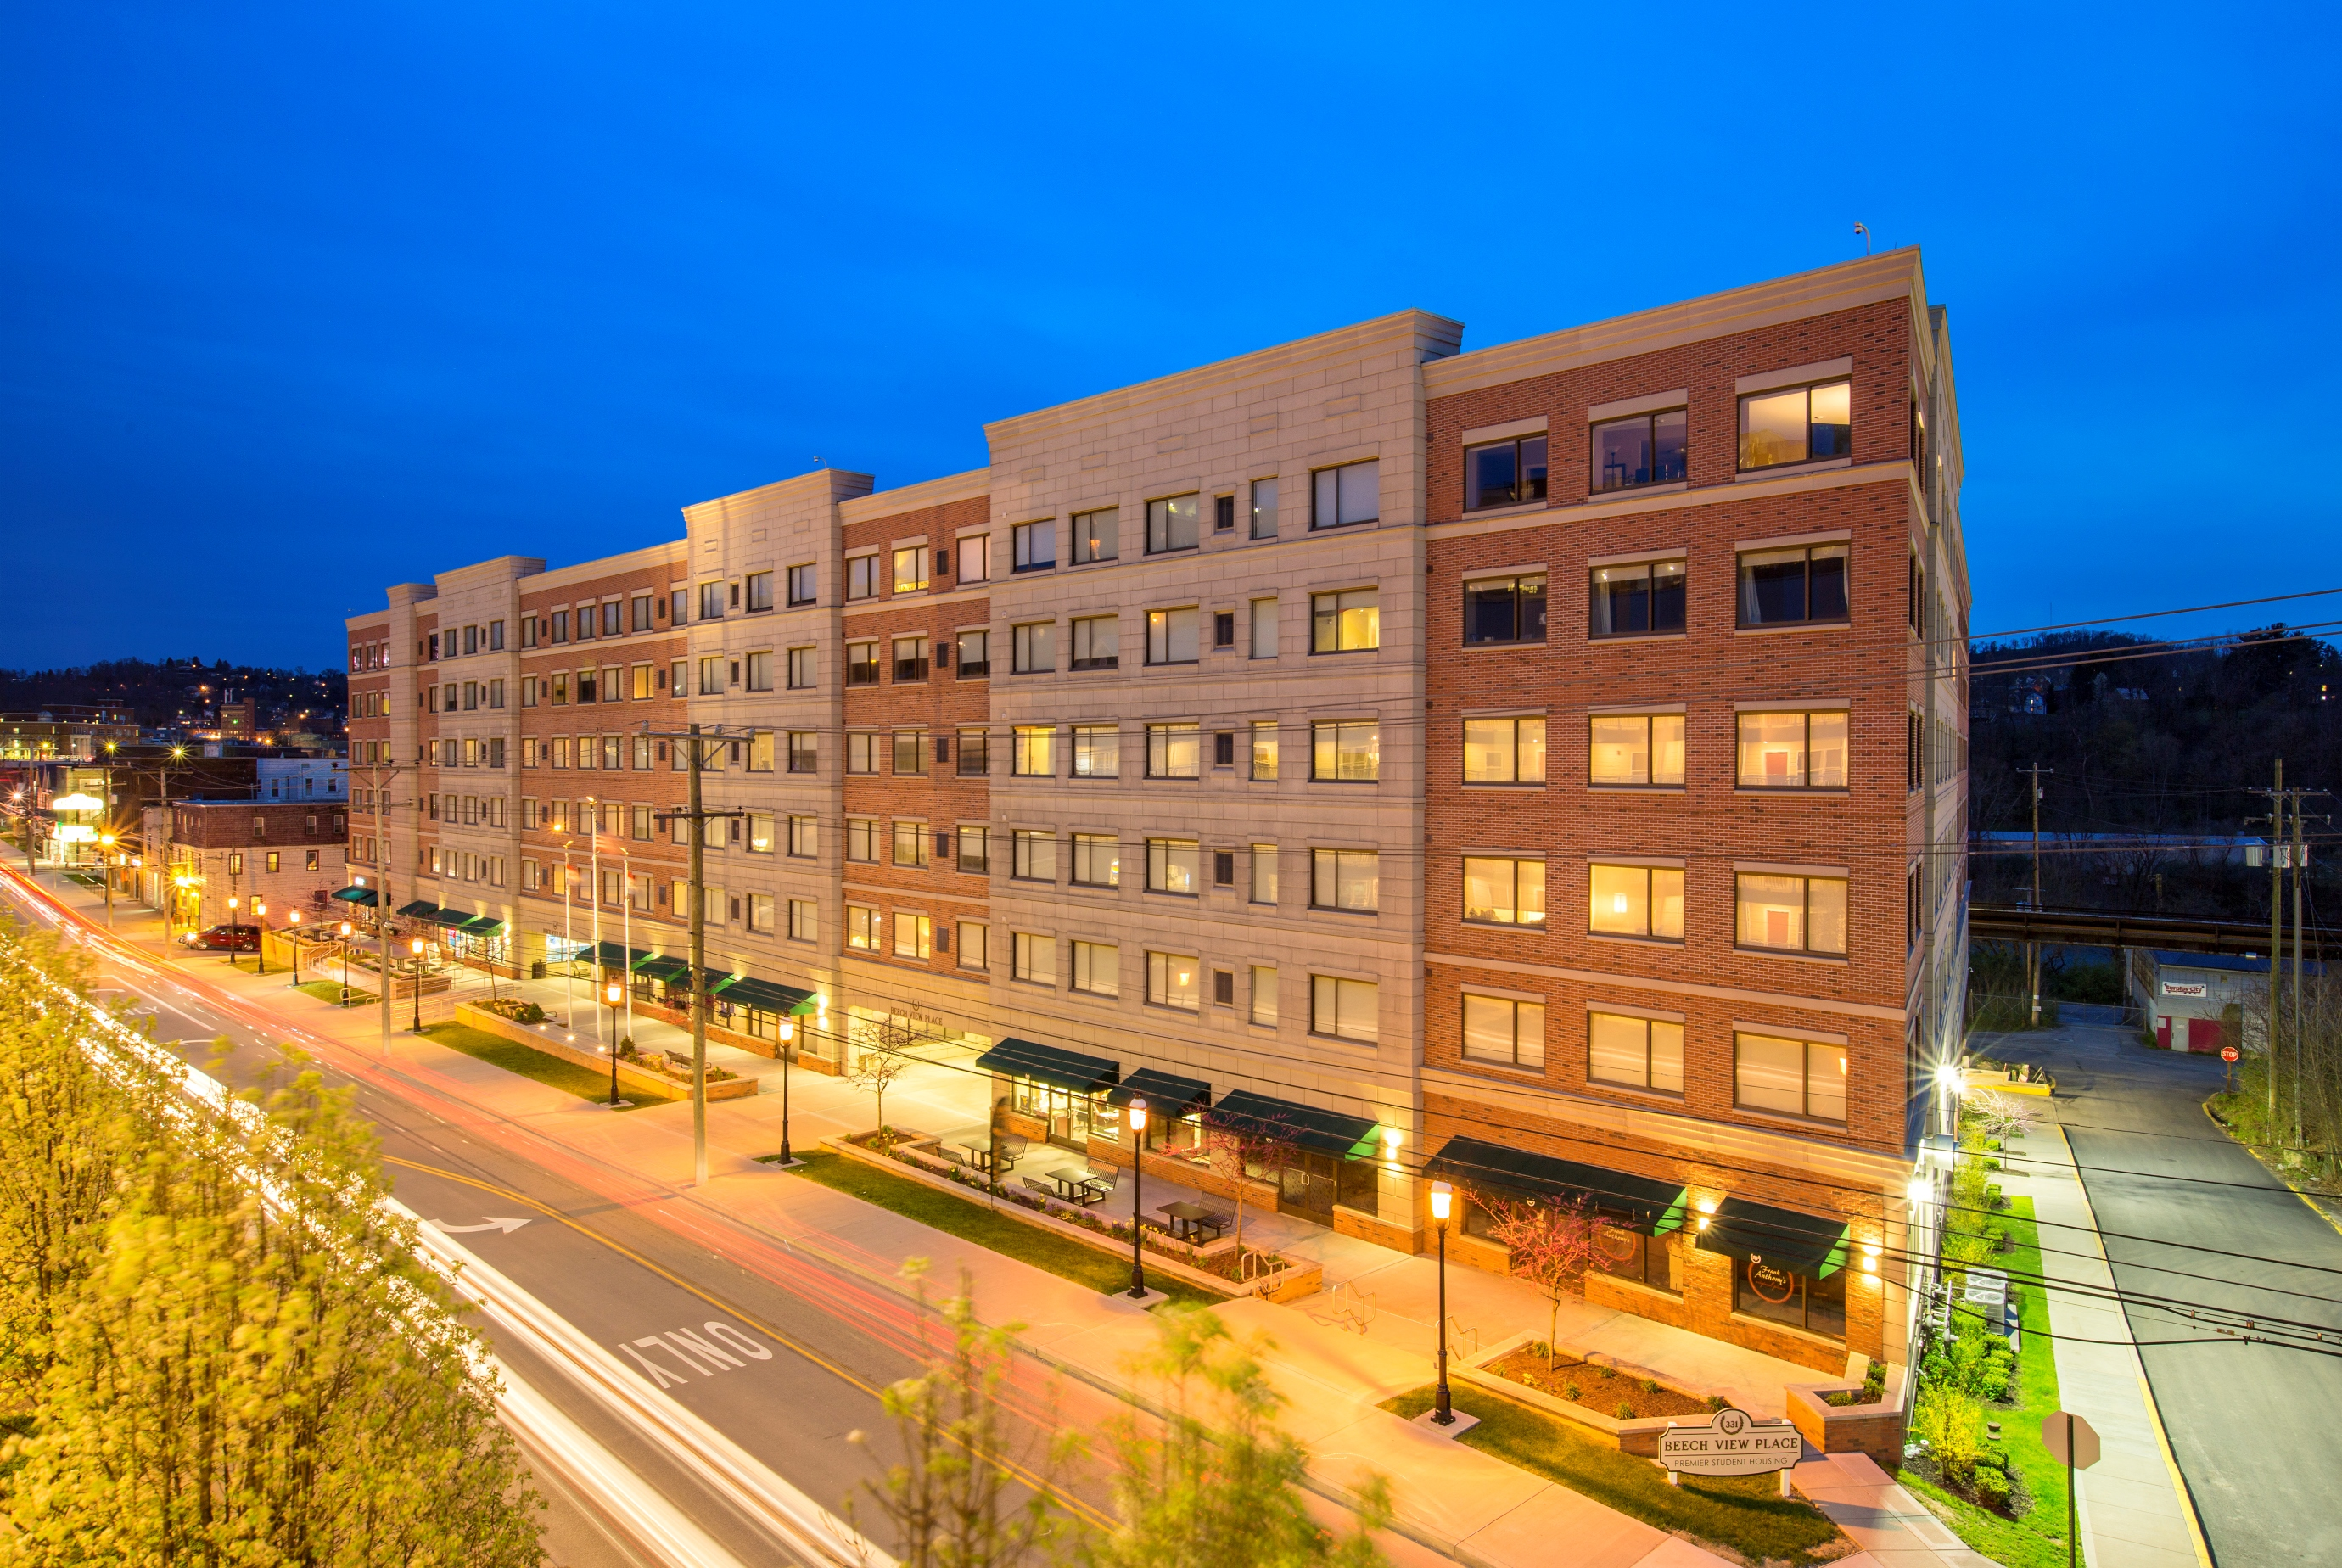 Core Spaces Acquires 420-Bed Student Housing Residence ...